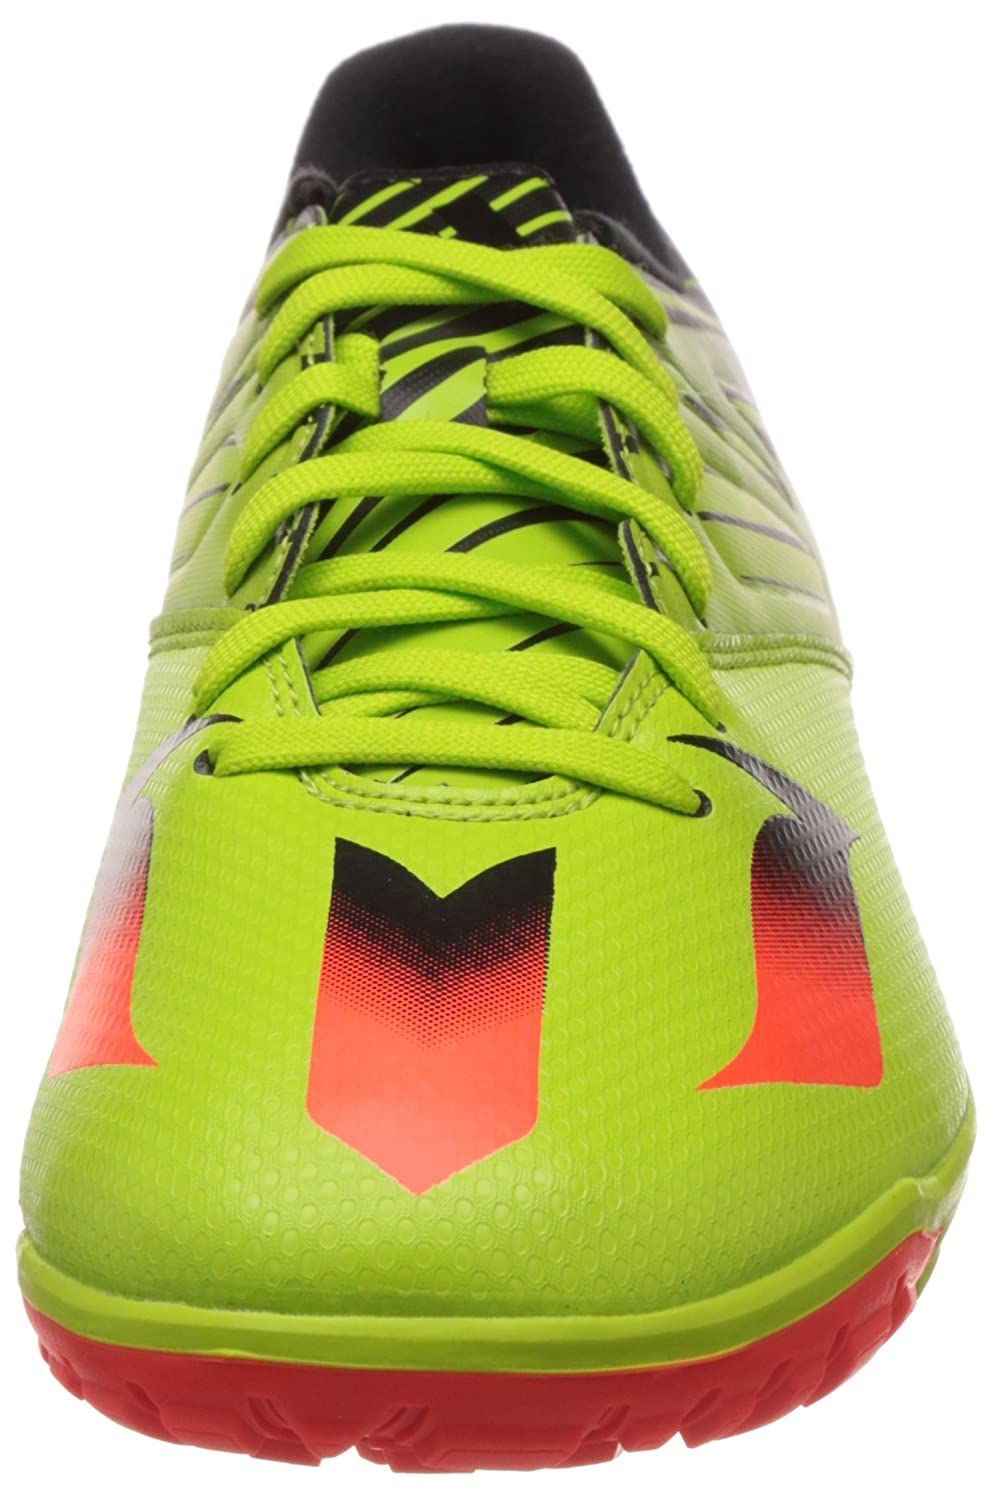 Amazon.com | adidas Messi 15.3 Turf Mens Football Shoes Green S74696 | Soccer